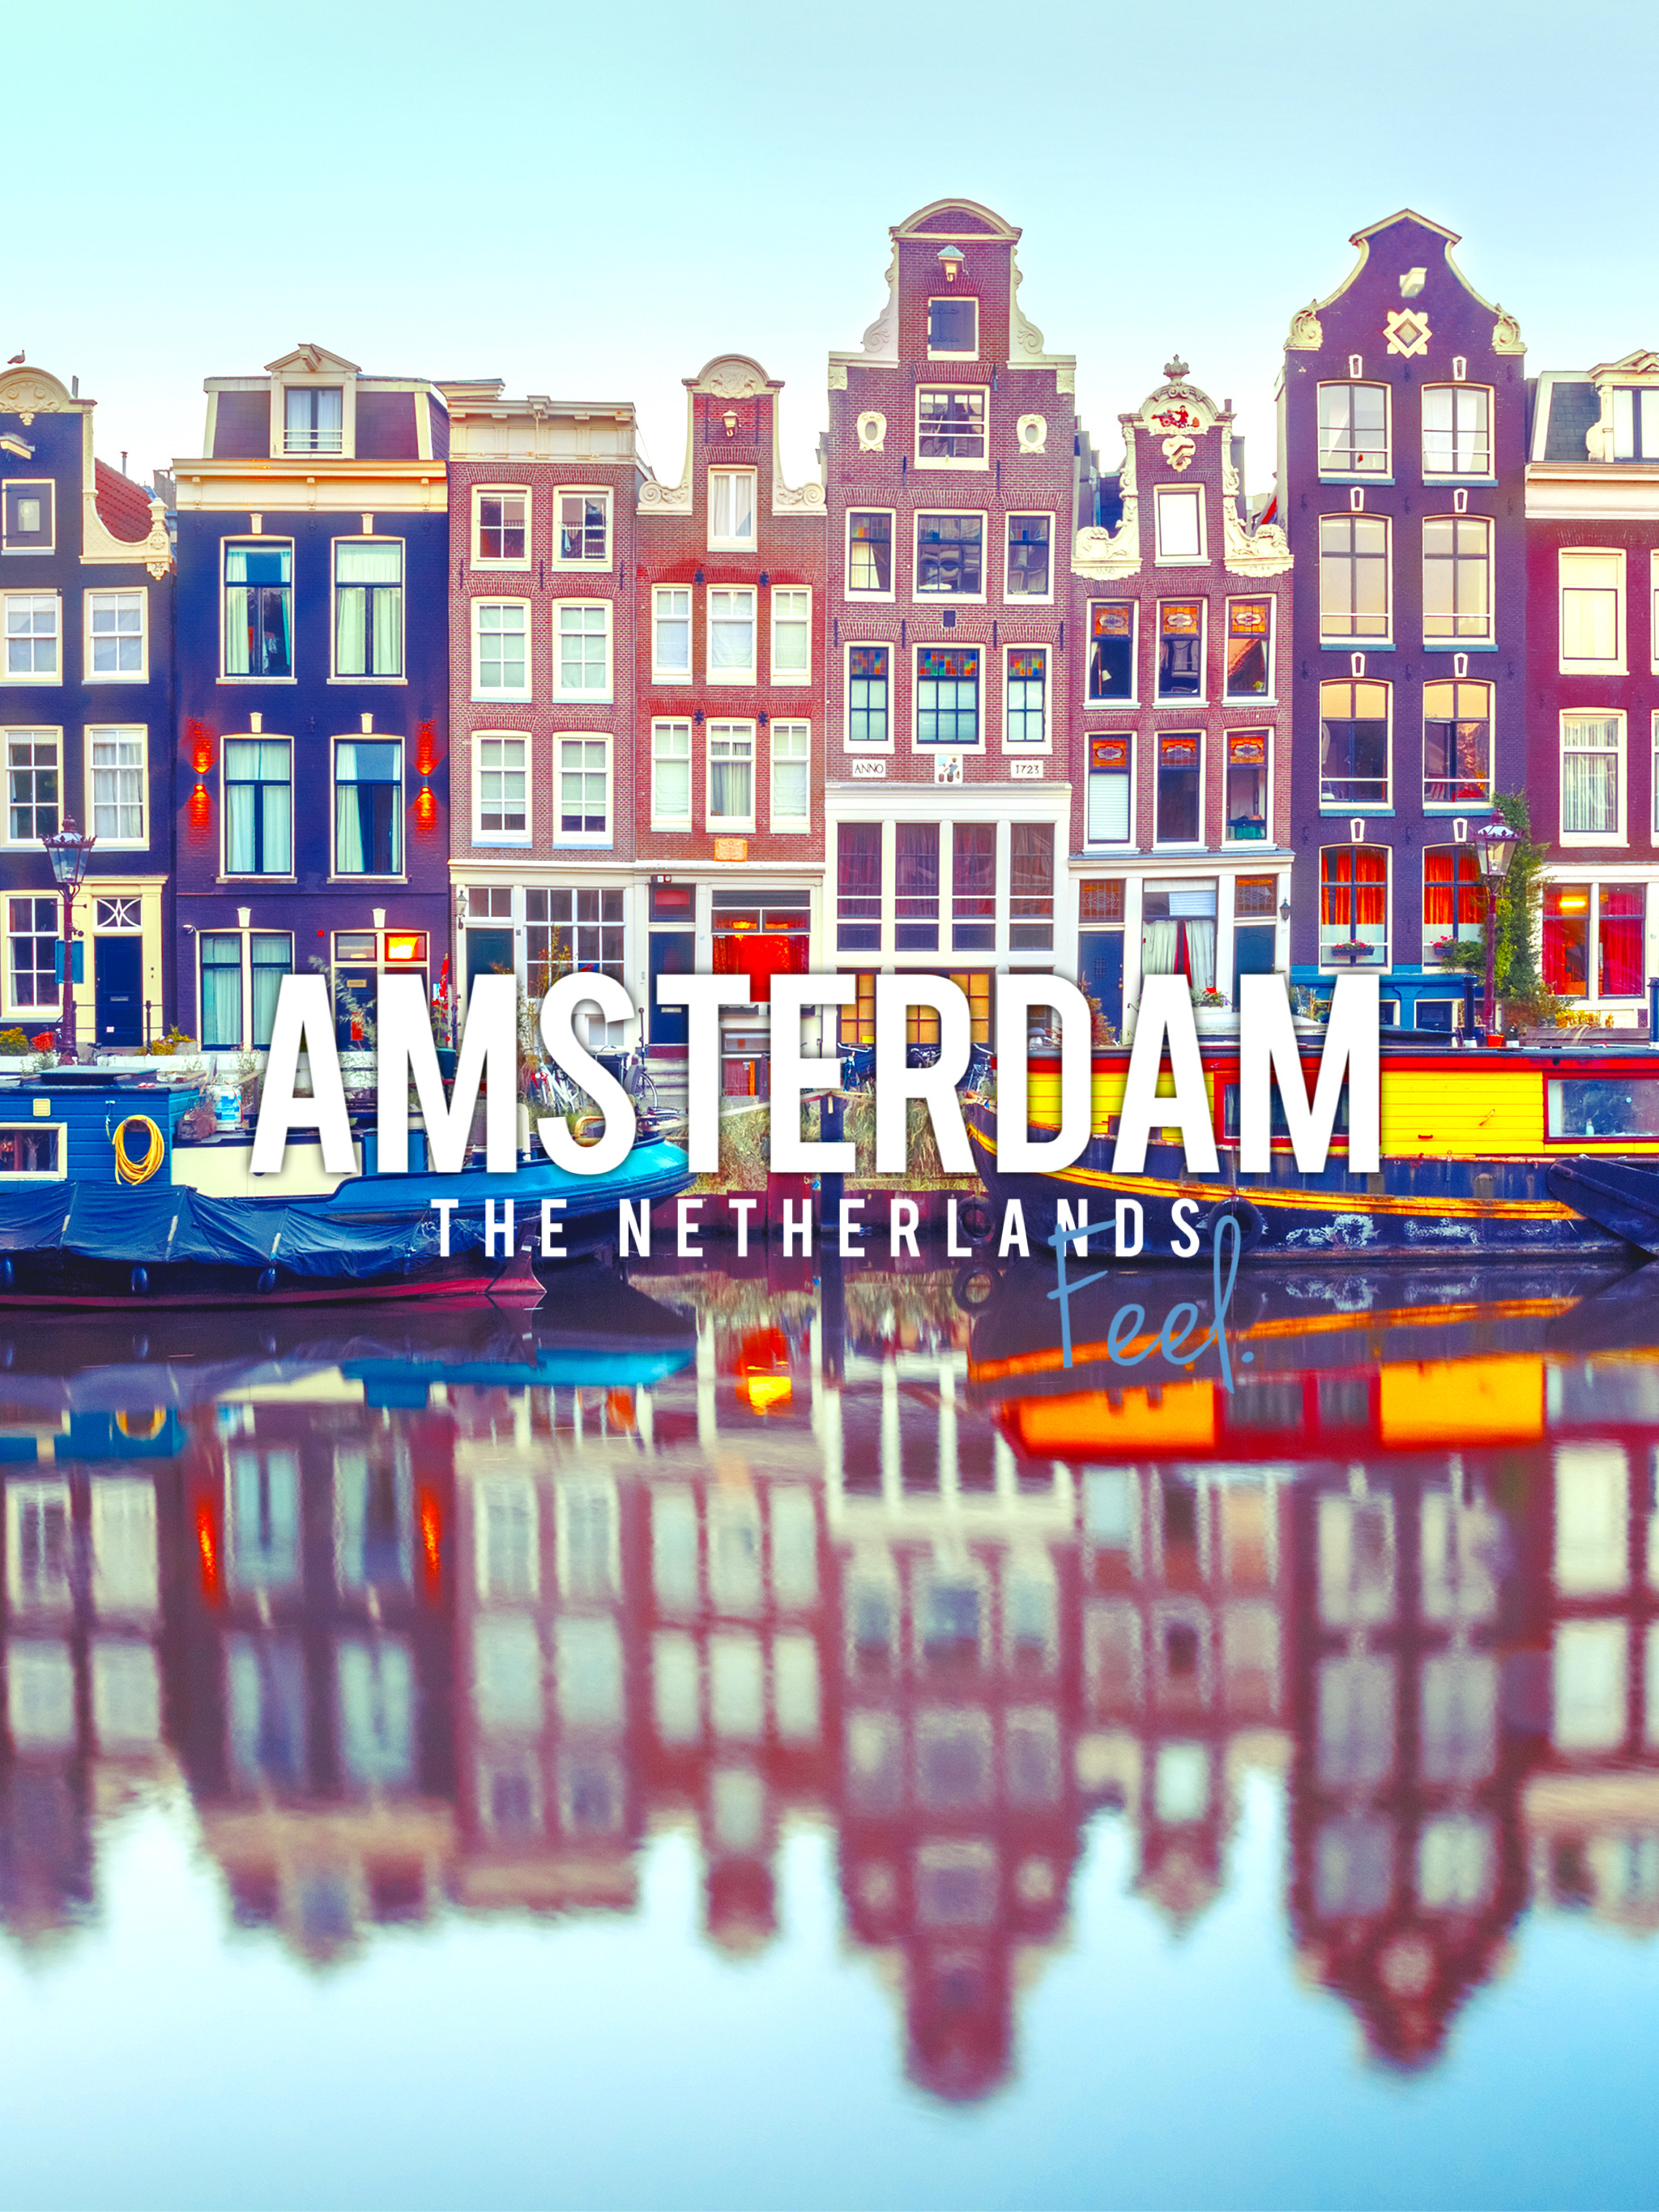 Most Important Things You Need to Know to Feel and Explore Amsterdam